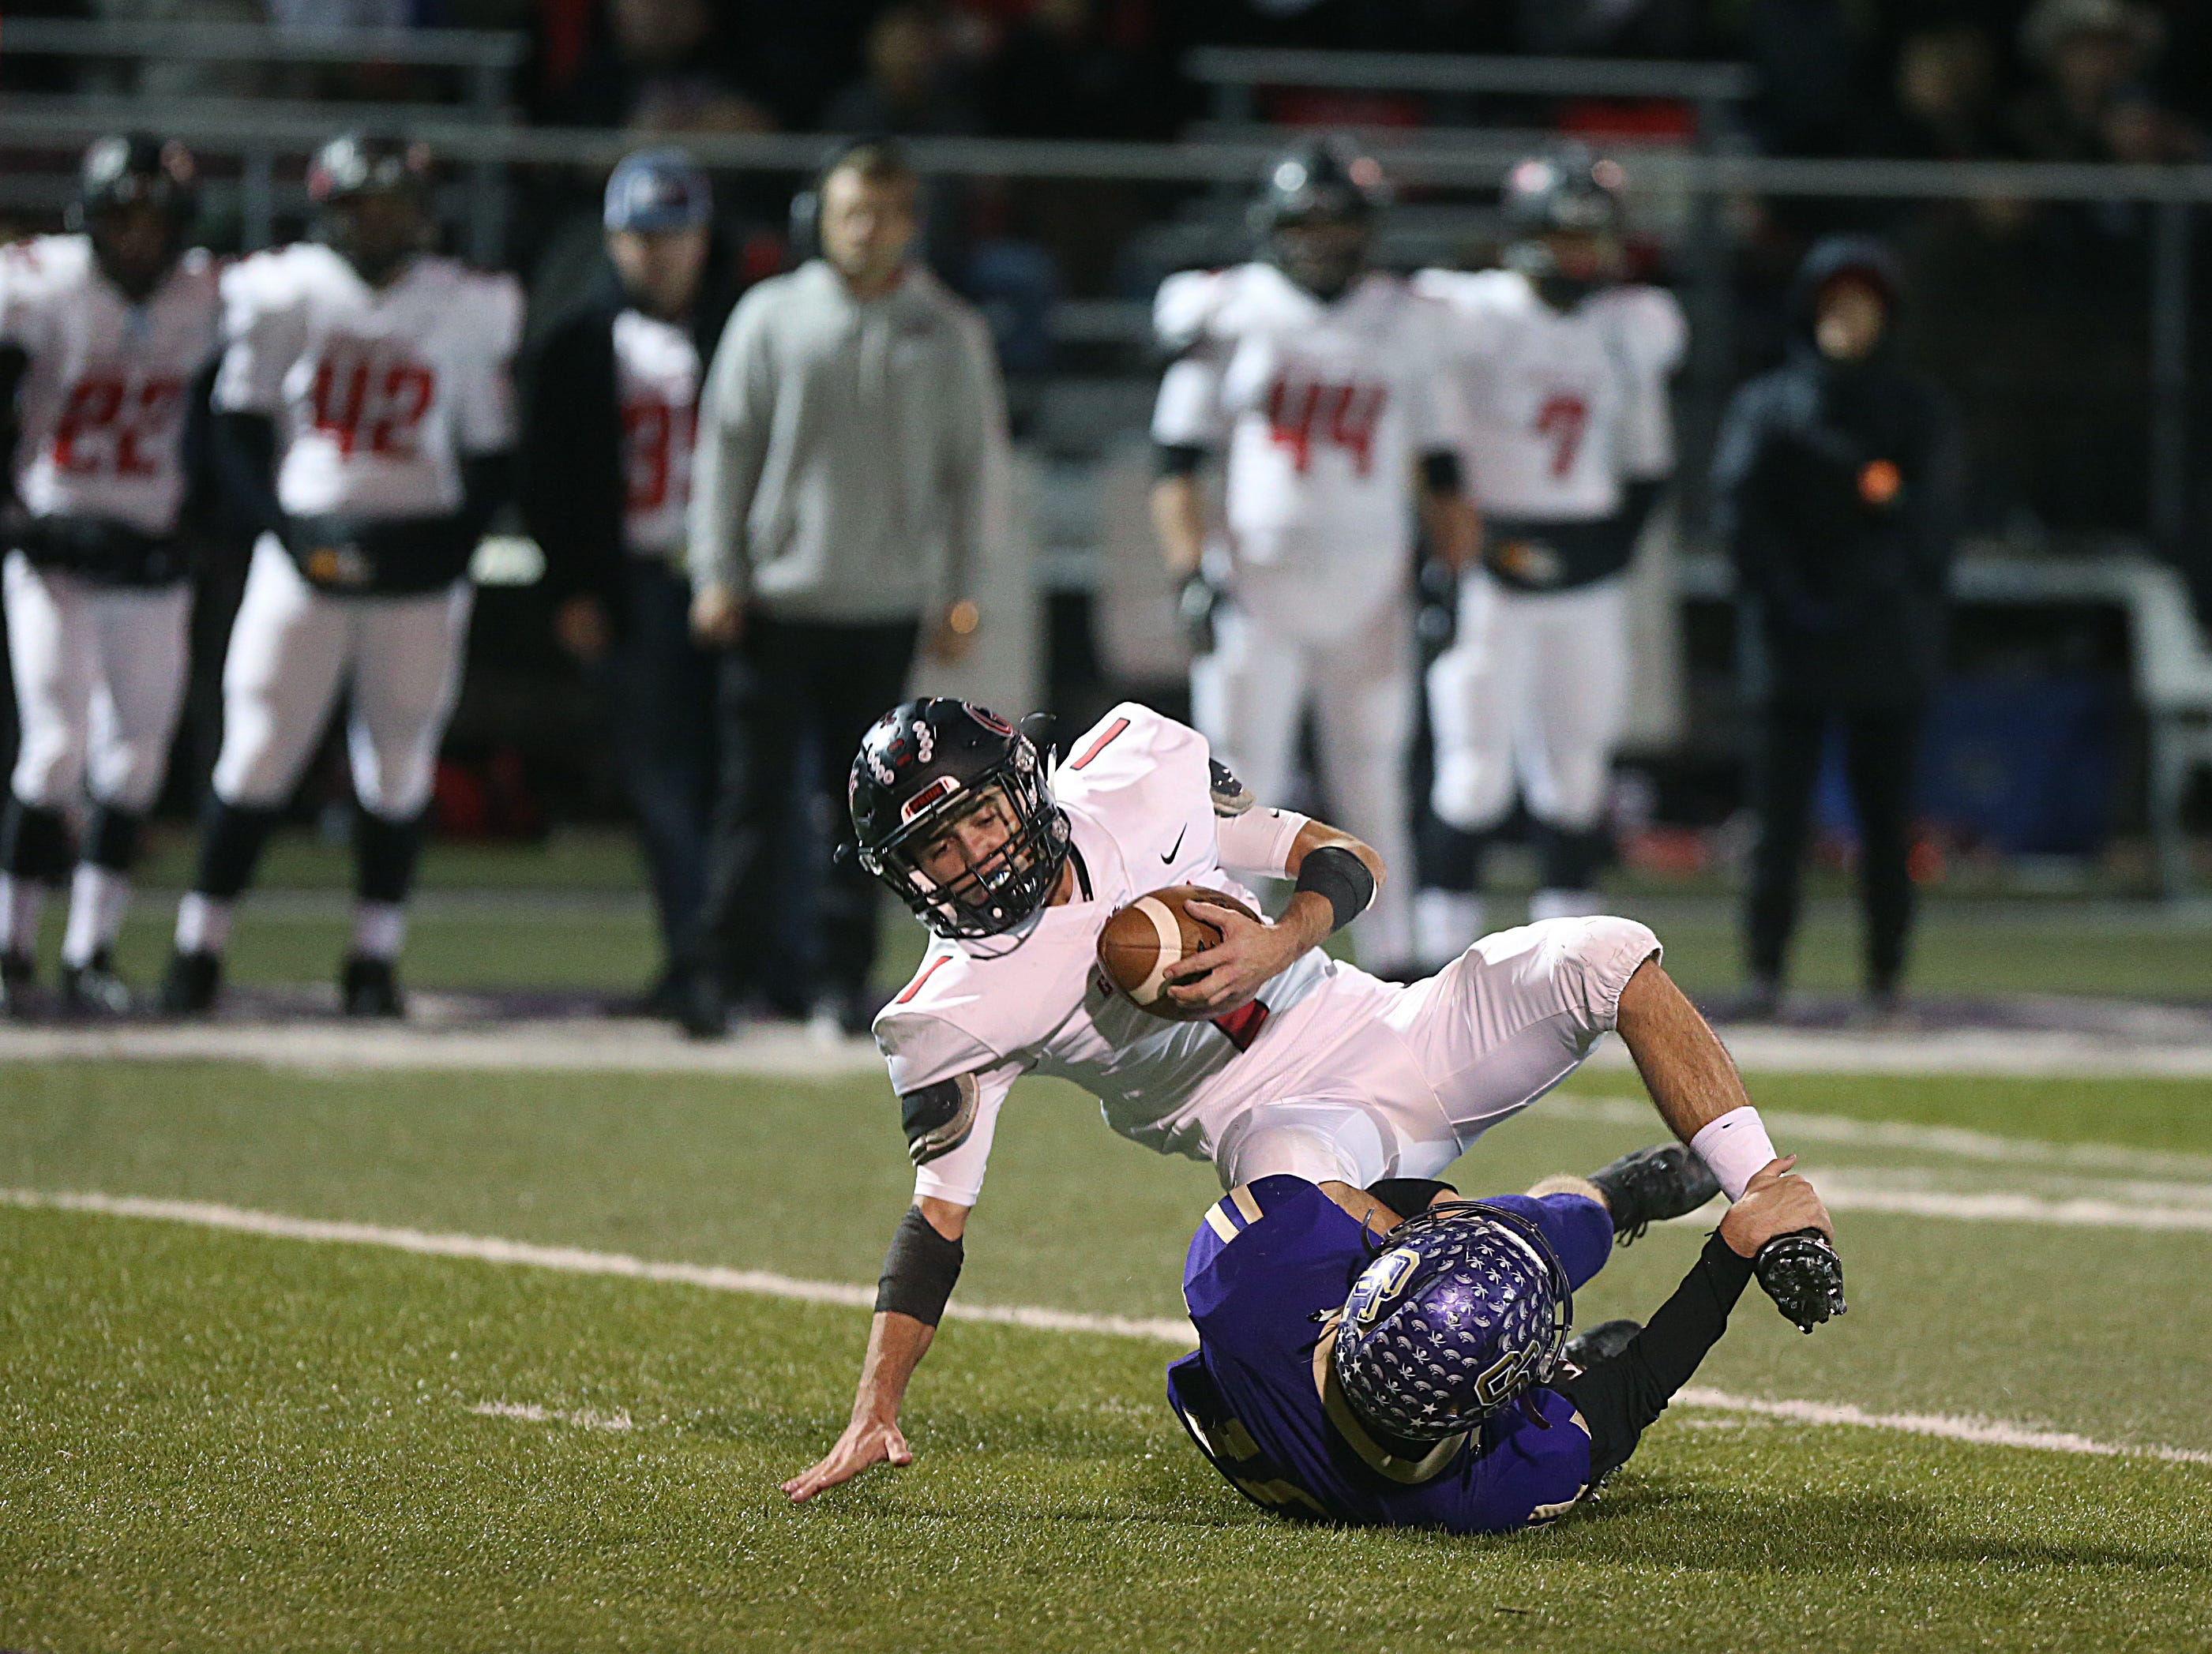 Garden City's Hunter McMillan (#1) is tripped up by Sterling City's Cross Knittel Friday, Nov. 9, 2018 during their game in Sterling City.